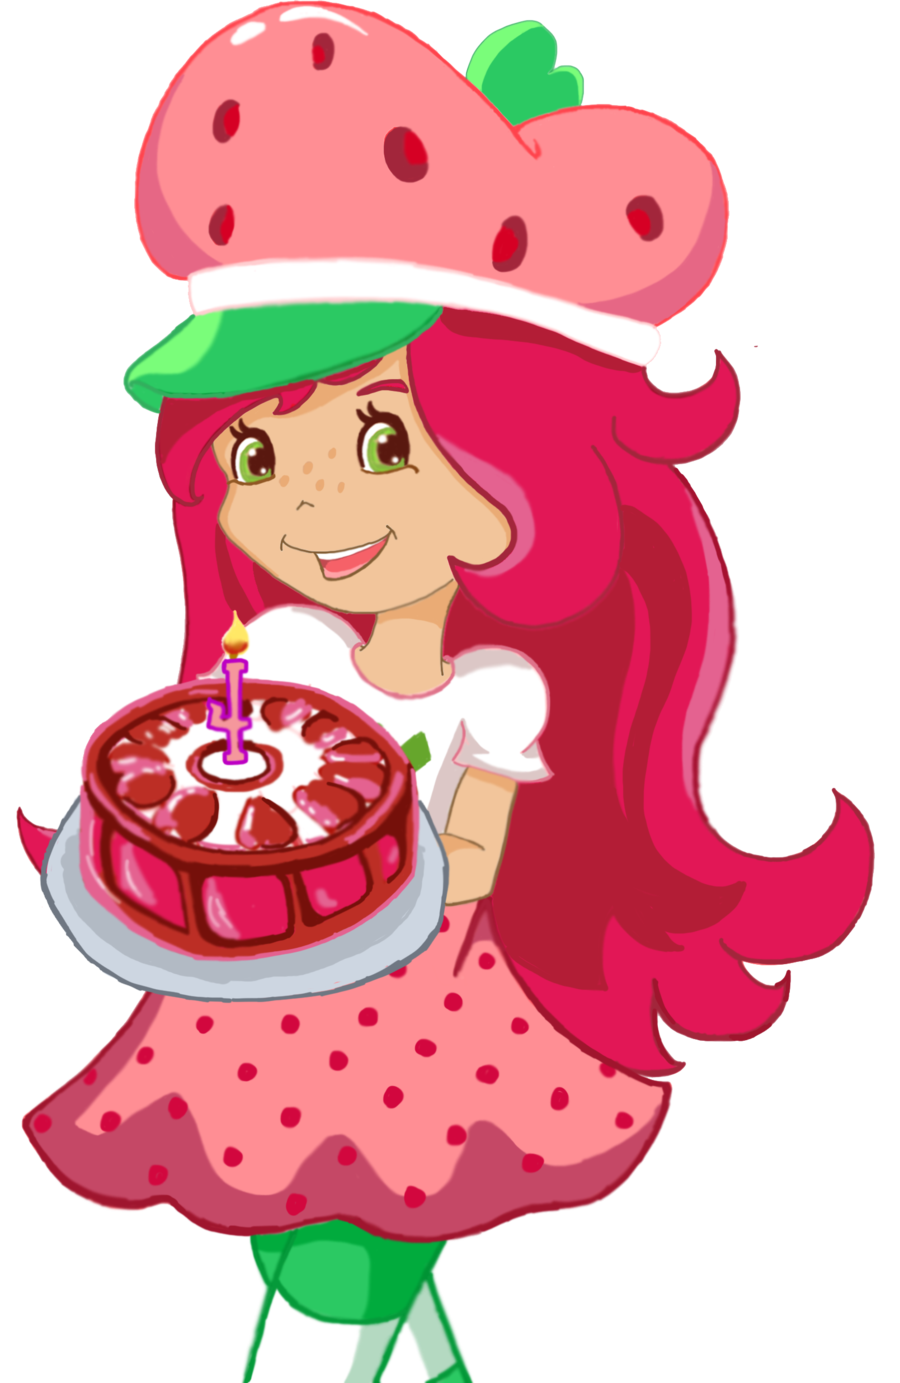 Biscuit drawing strawberry shortcake. By anjiookami